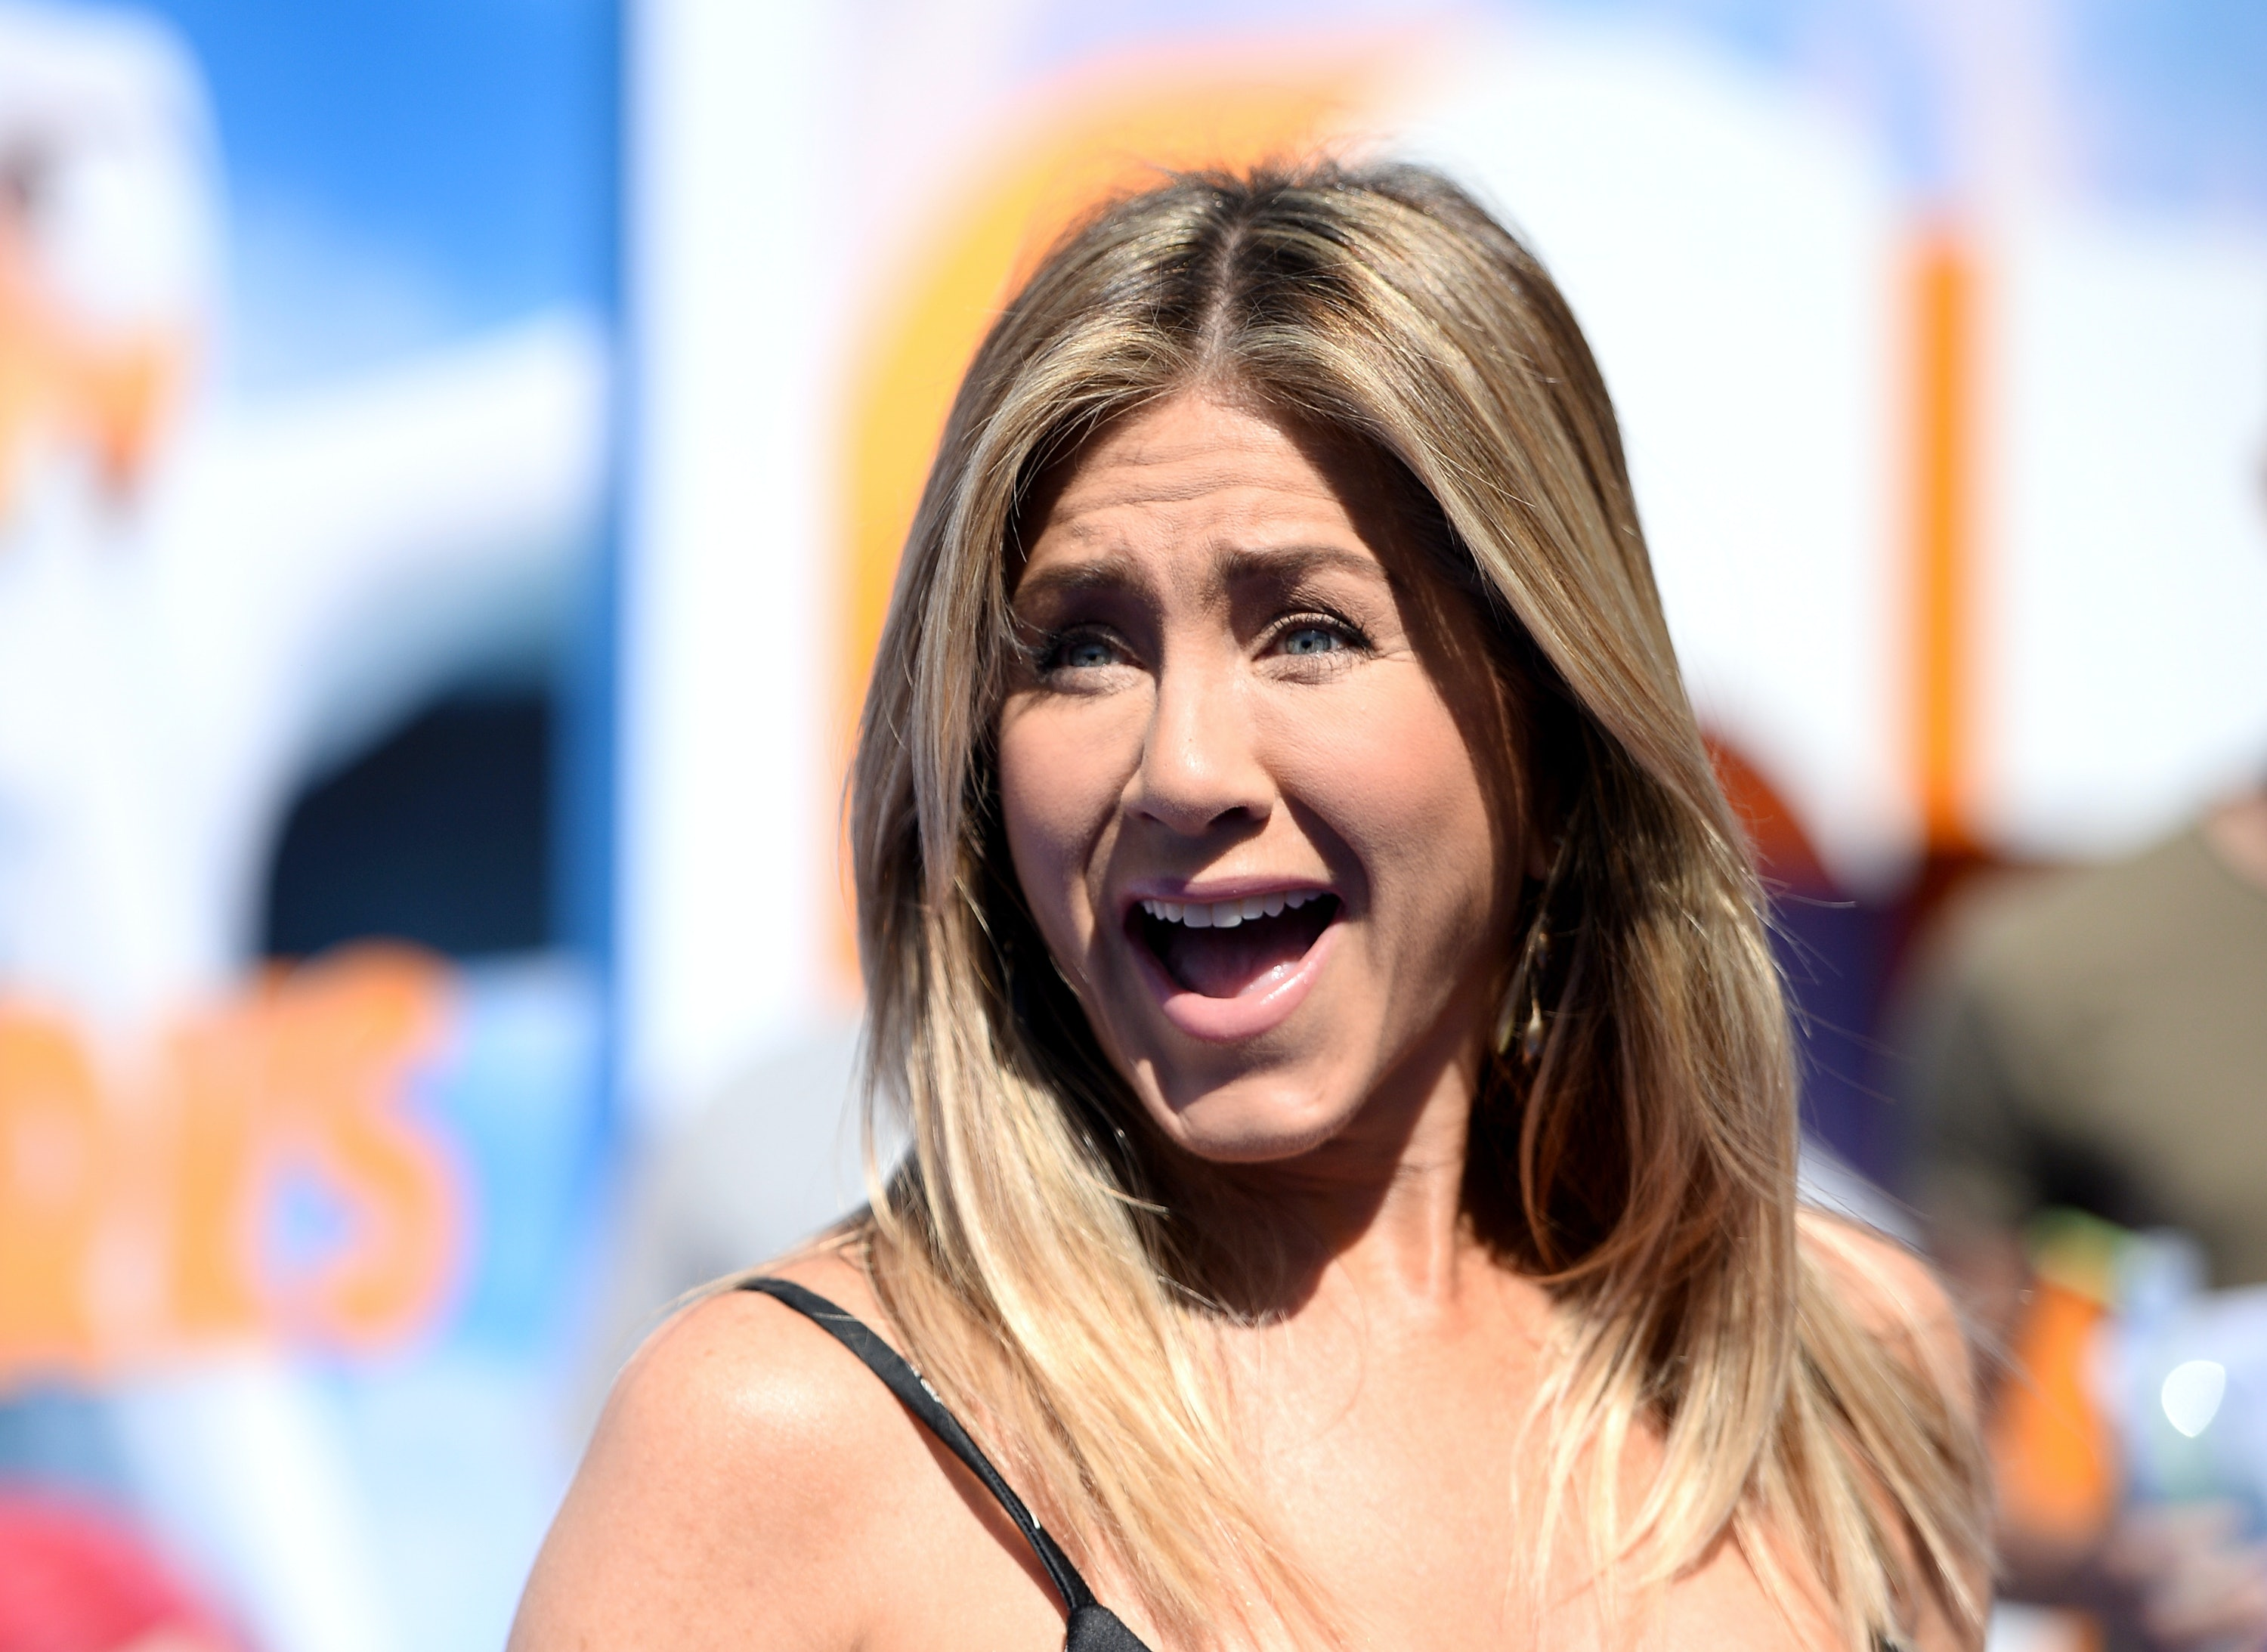 Jennifer Aniston Tells Rachel Green Impersonator To 'Move On'